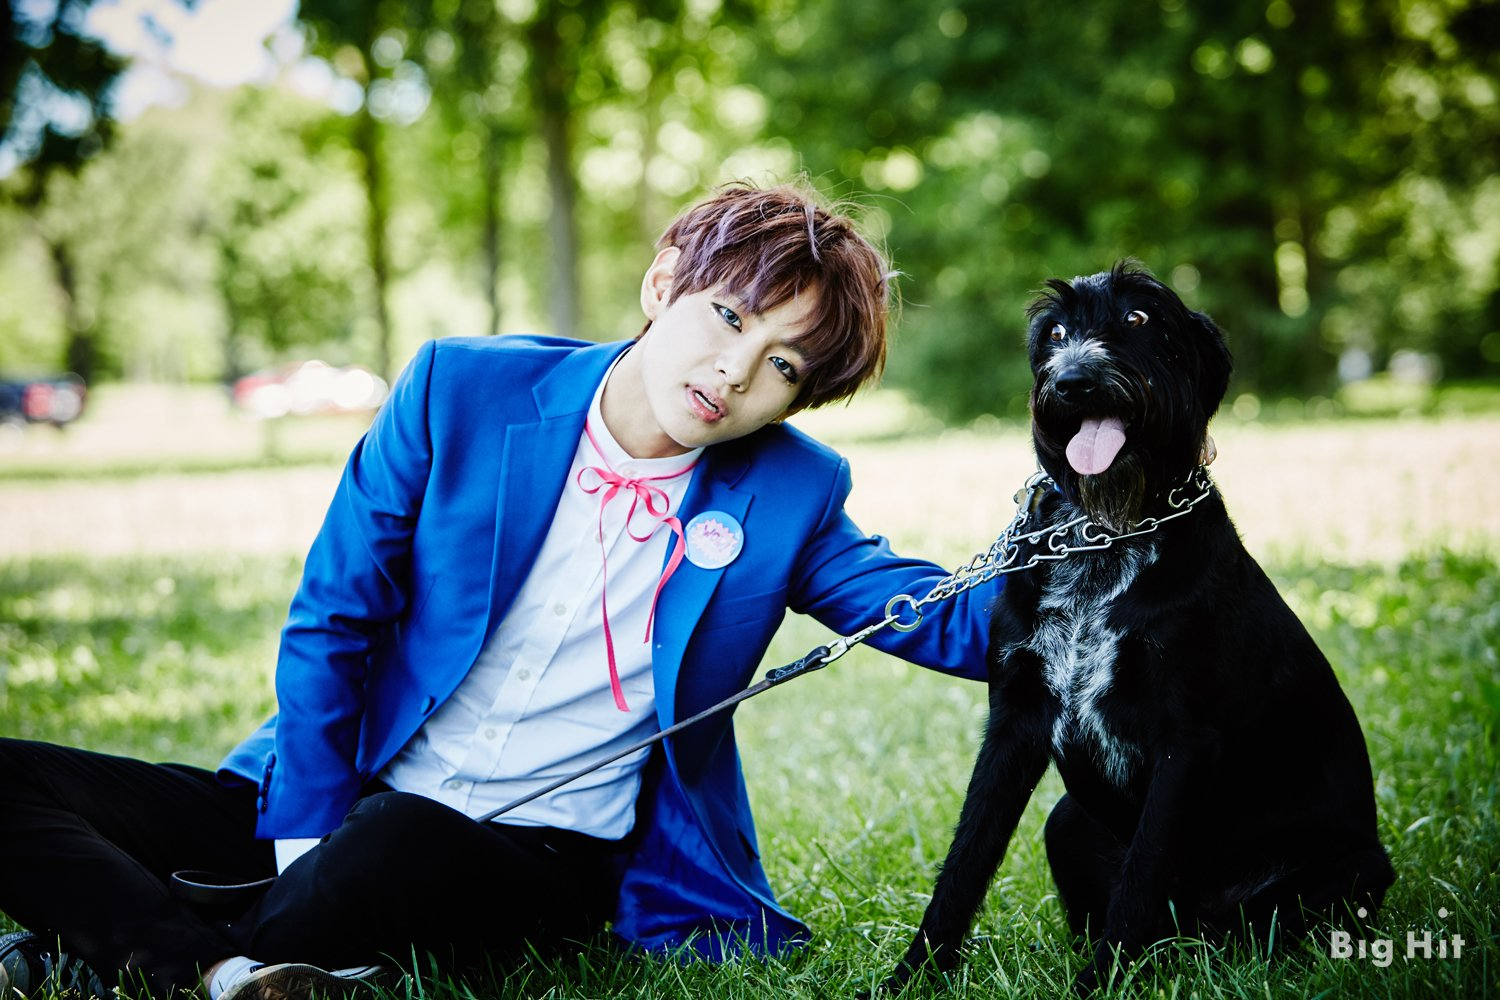 Interview trans releasing bts dreaming days chicago pictorial